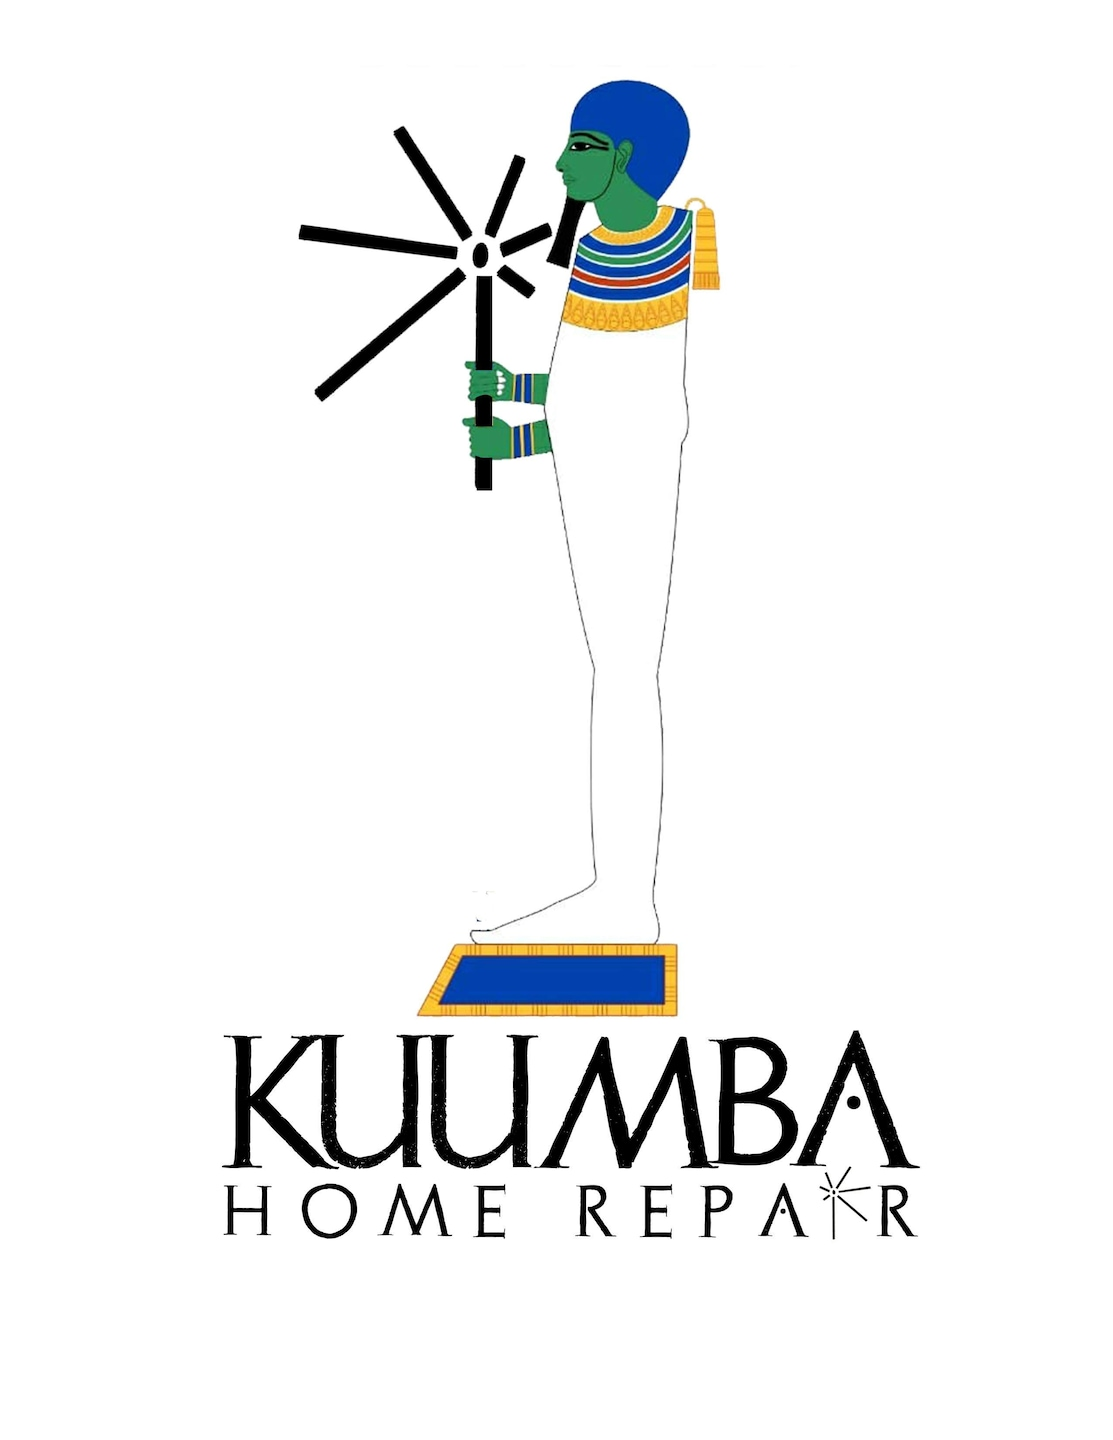 Kuumba Home Repair